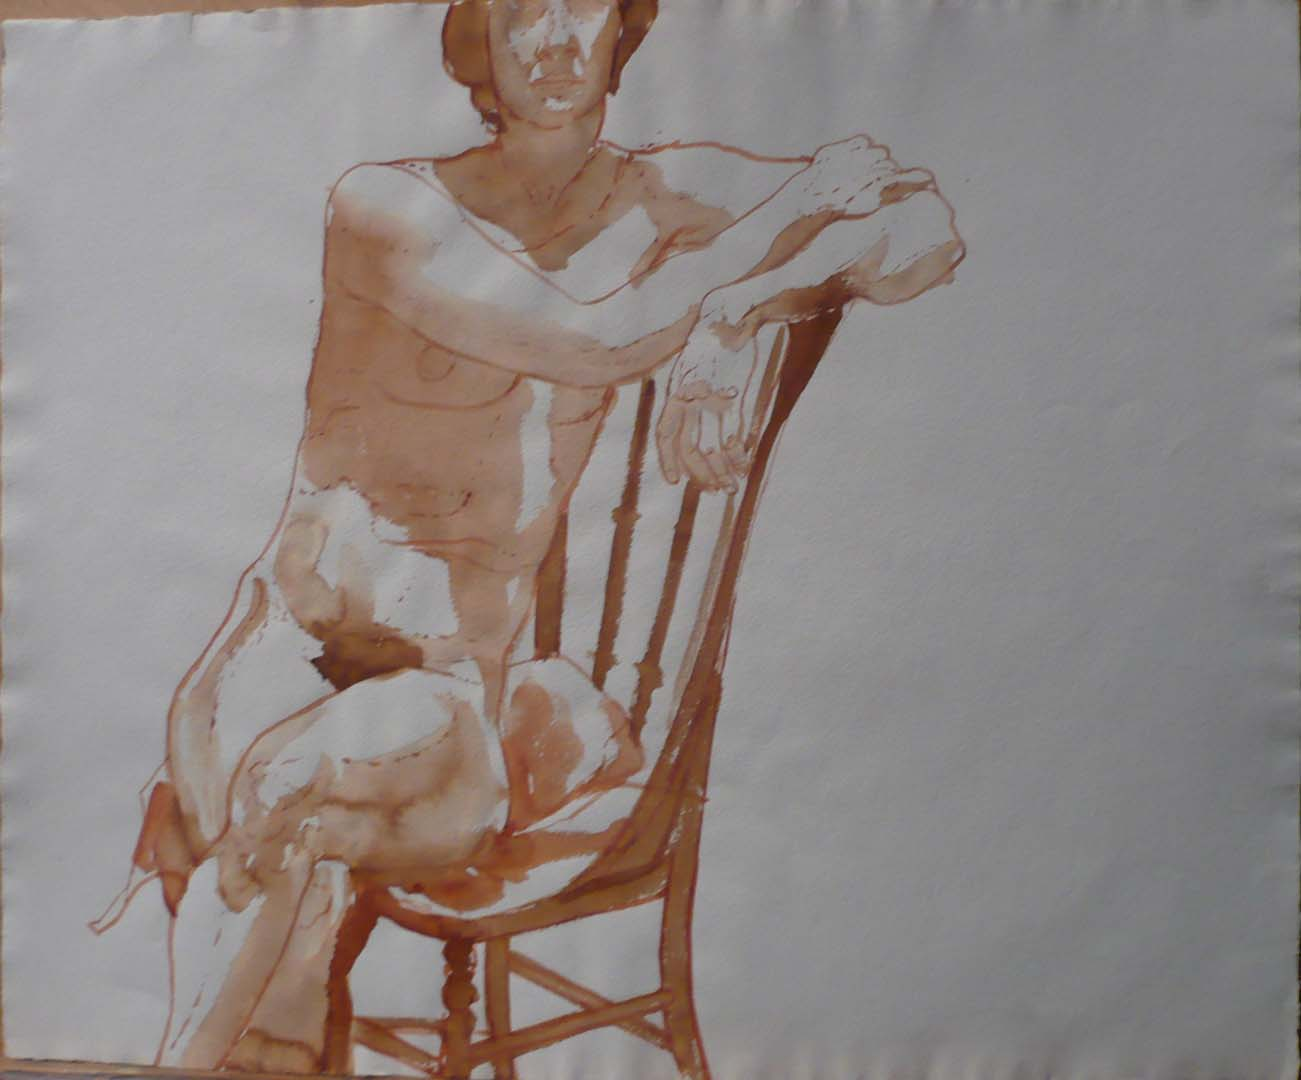 "Female Nude Seated in Chair Sepia 19.625"" x 23.75"""